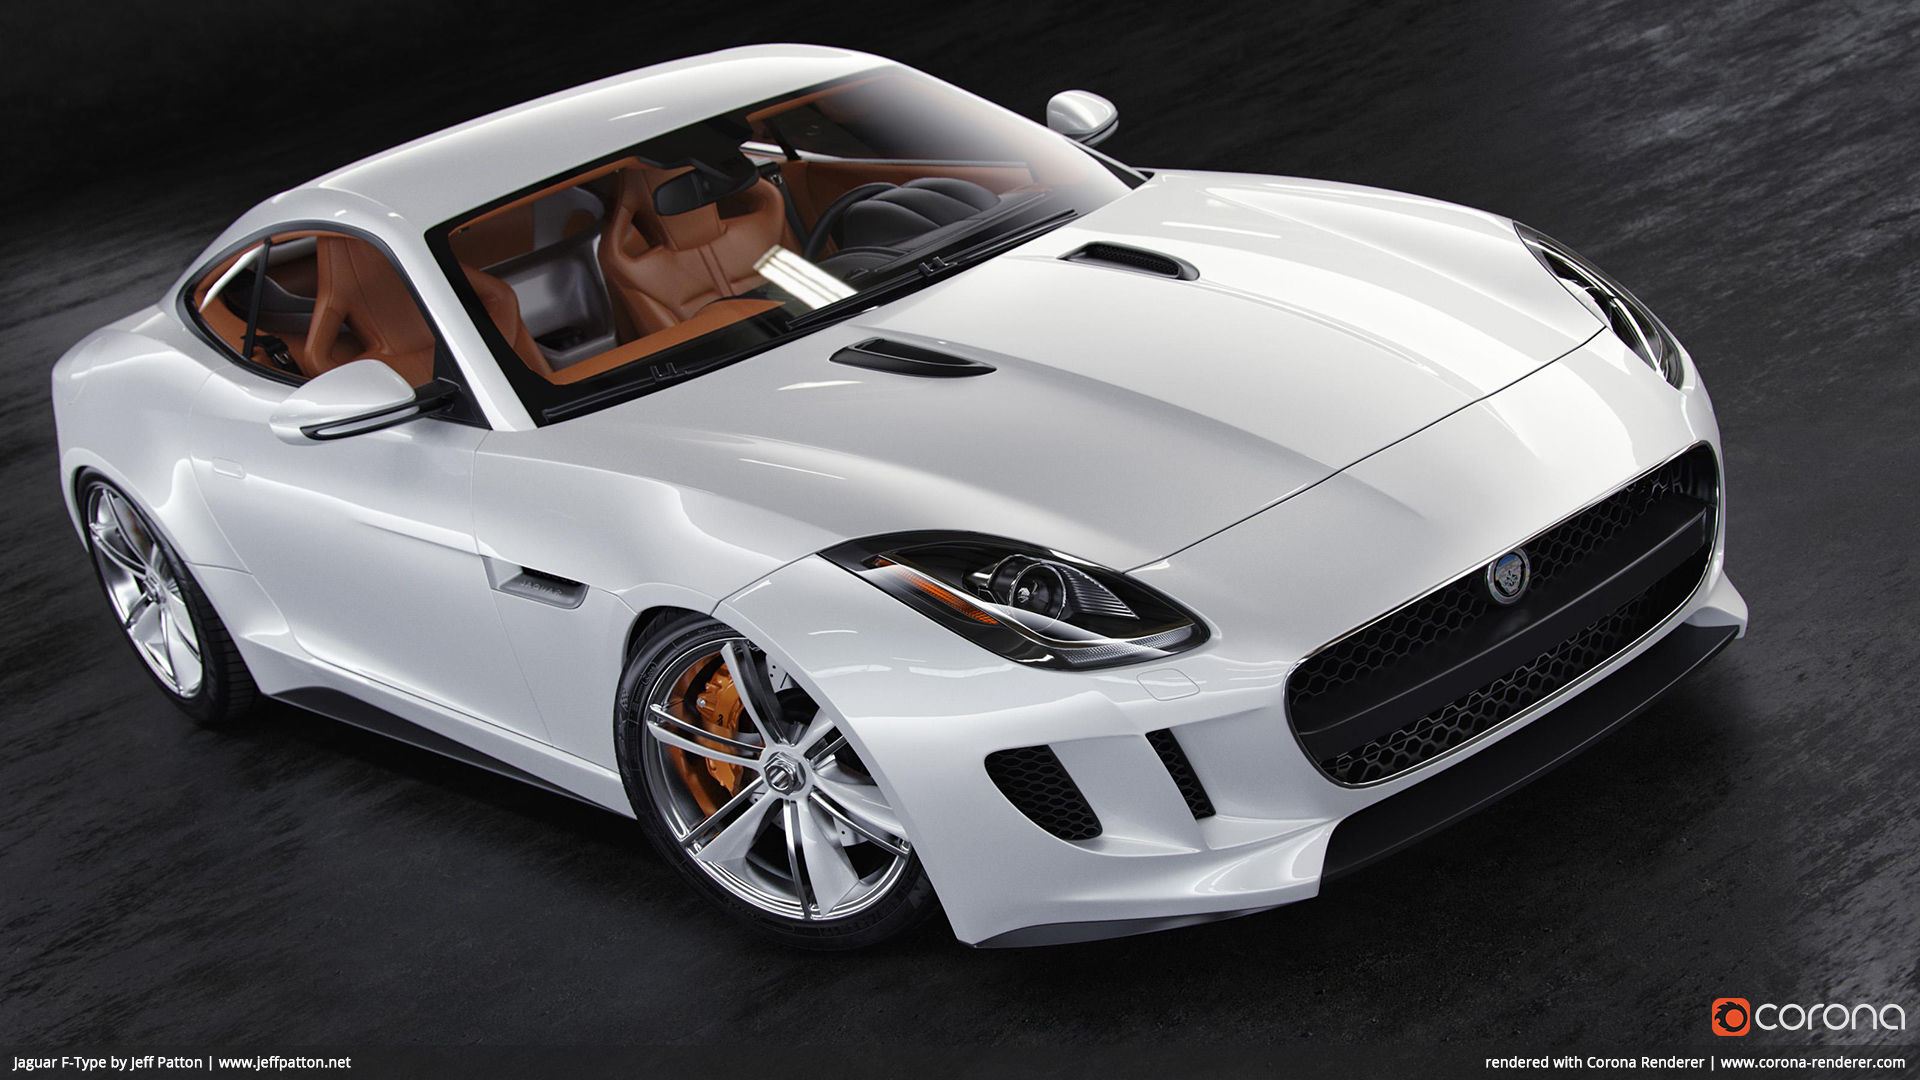 Jaguar F-Type by Jeff Patton